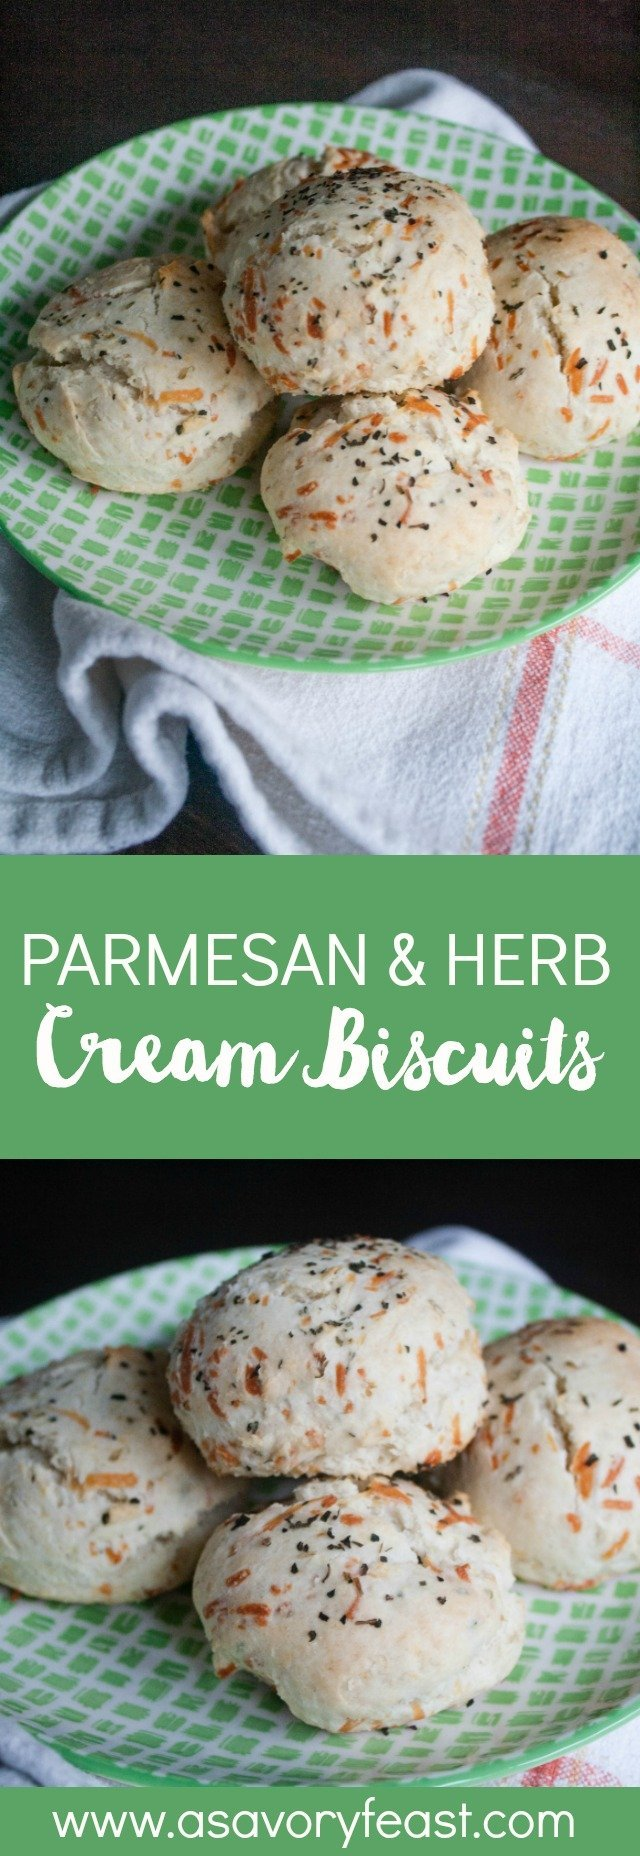 These savory Parmesan & Herb Cream Biscuits will go great with whatever you are making for dinner tonight! This recipe is so simple to make in one bowl. Cream biscuits are made with heavy whipping cream for an amazing light, fluffy texture. These include herbs and shredded parmesan cheese for extra flavor. Mix them up to enjoy as a side with dinner tonight!